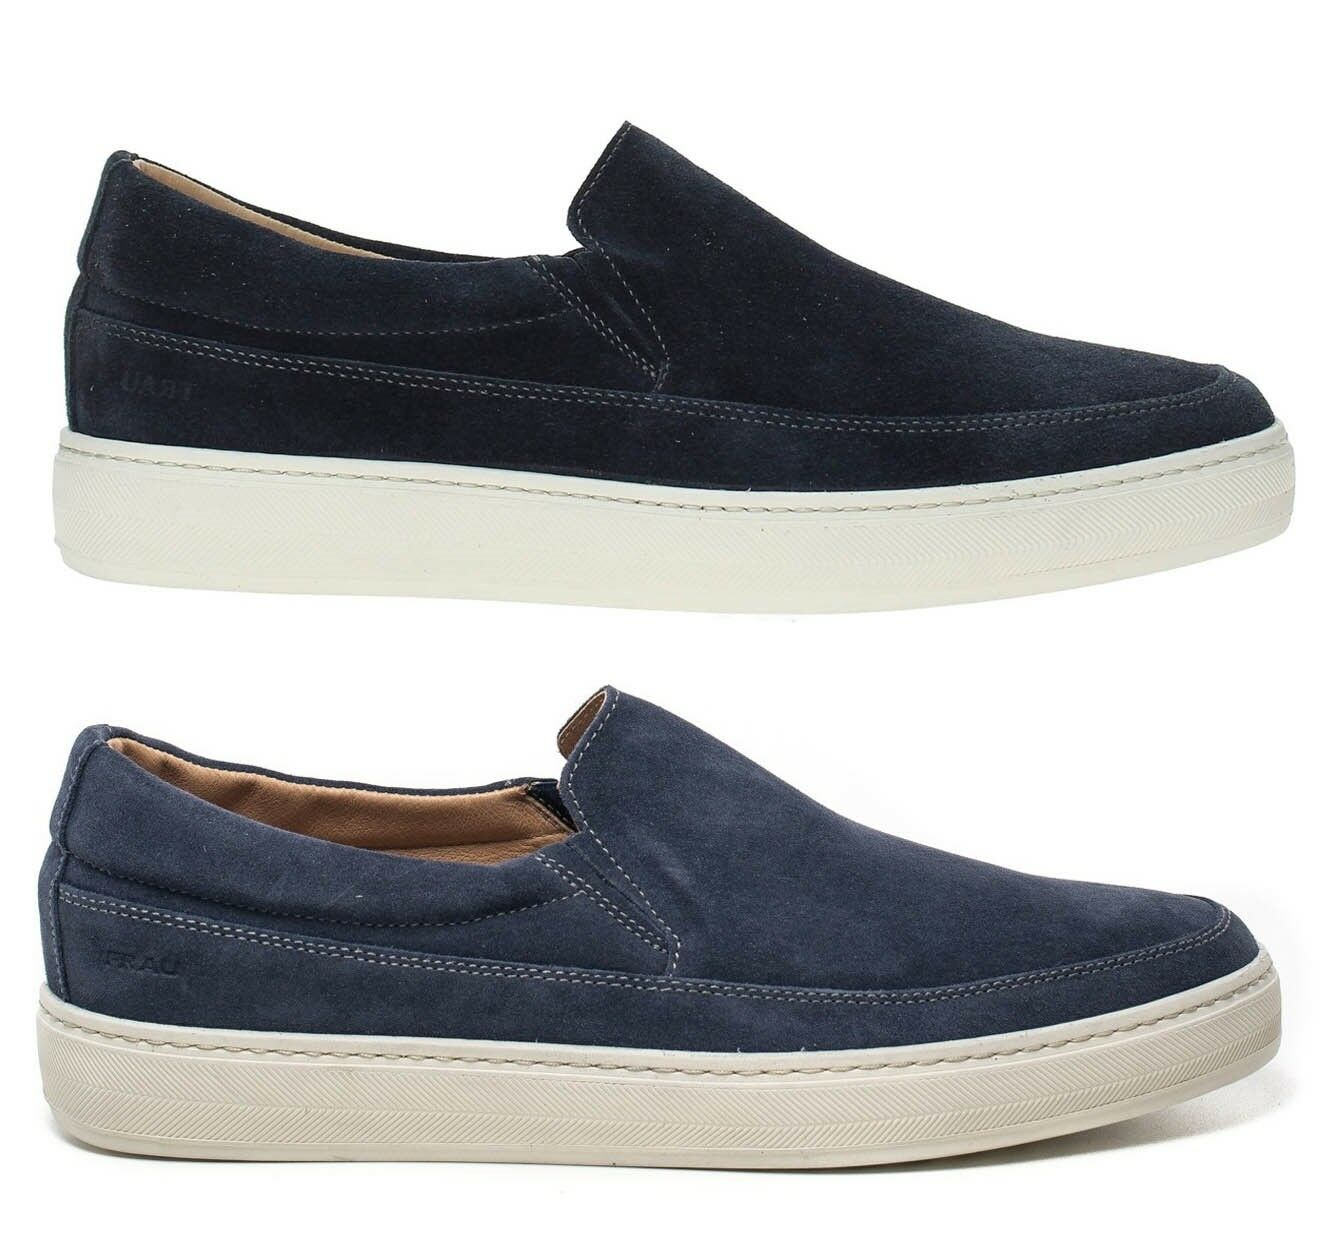 Frau 28a4 bluee Jeans Men's shoes Loafers Velour Lace-Up Slip on Sneakers Suede